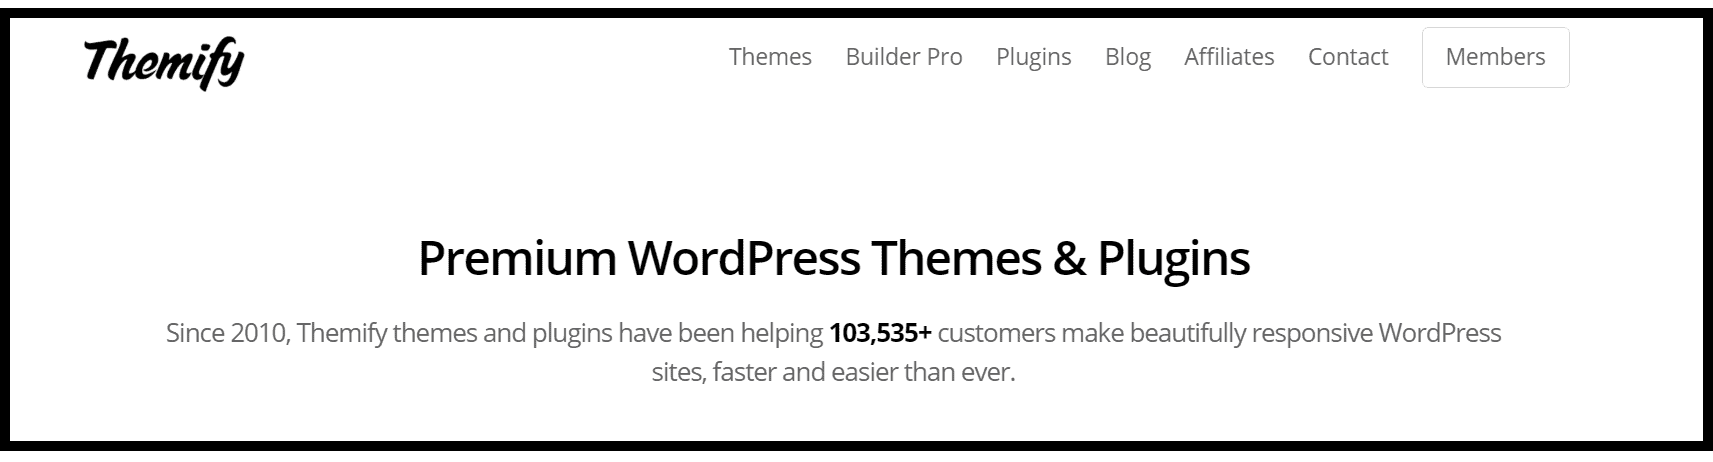 Themify- WordPress Themes and Plugins